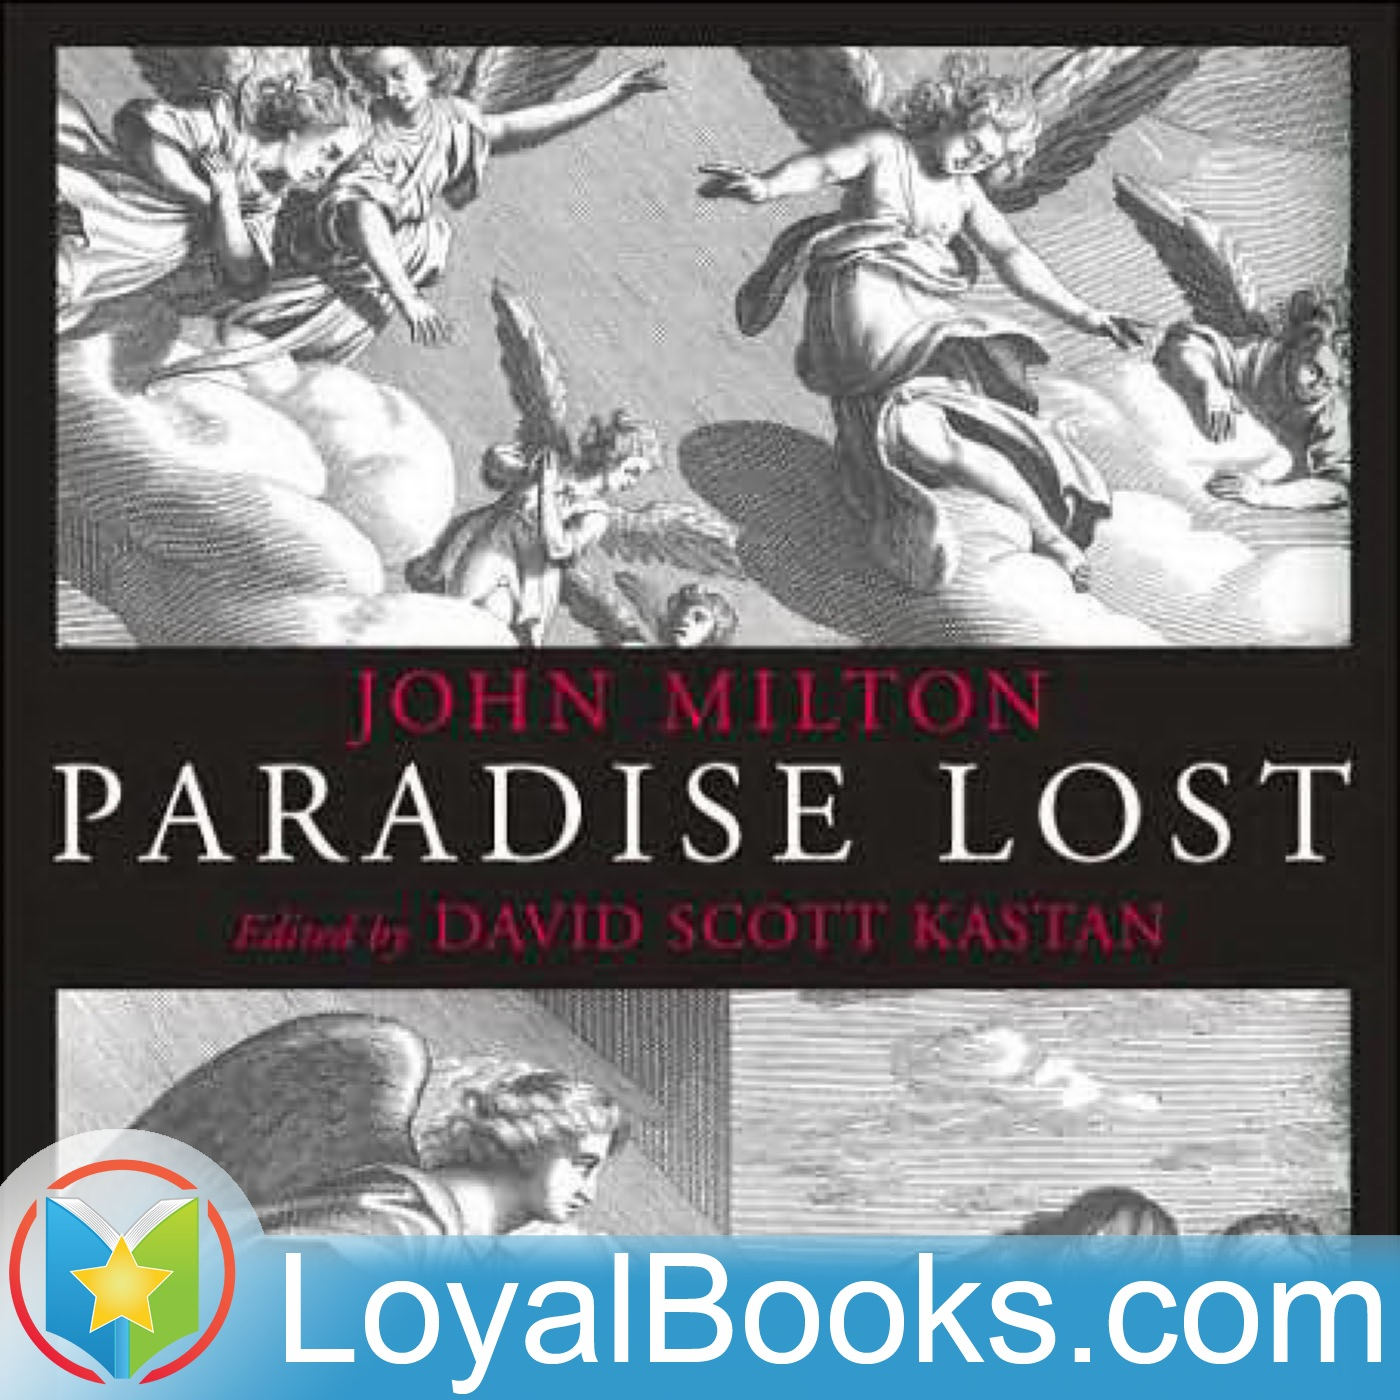 who is the hero of paradise lost